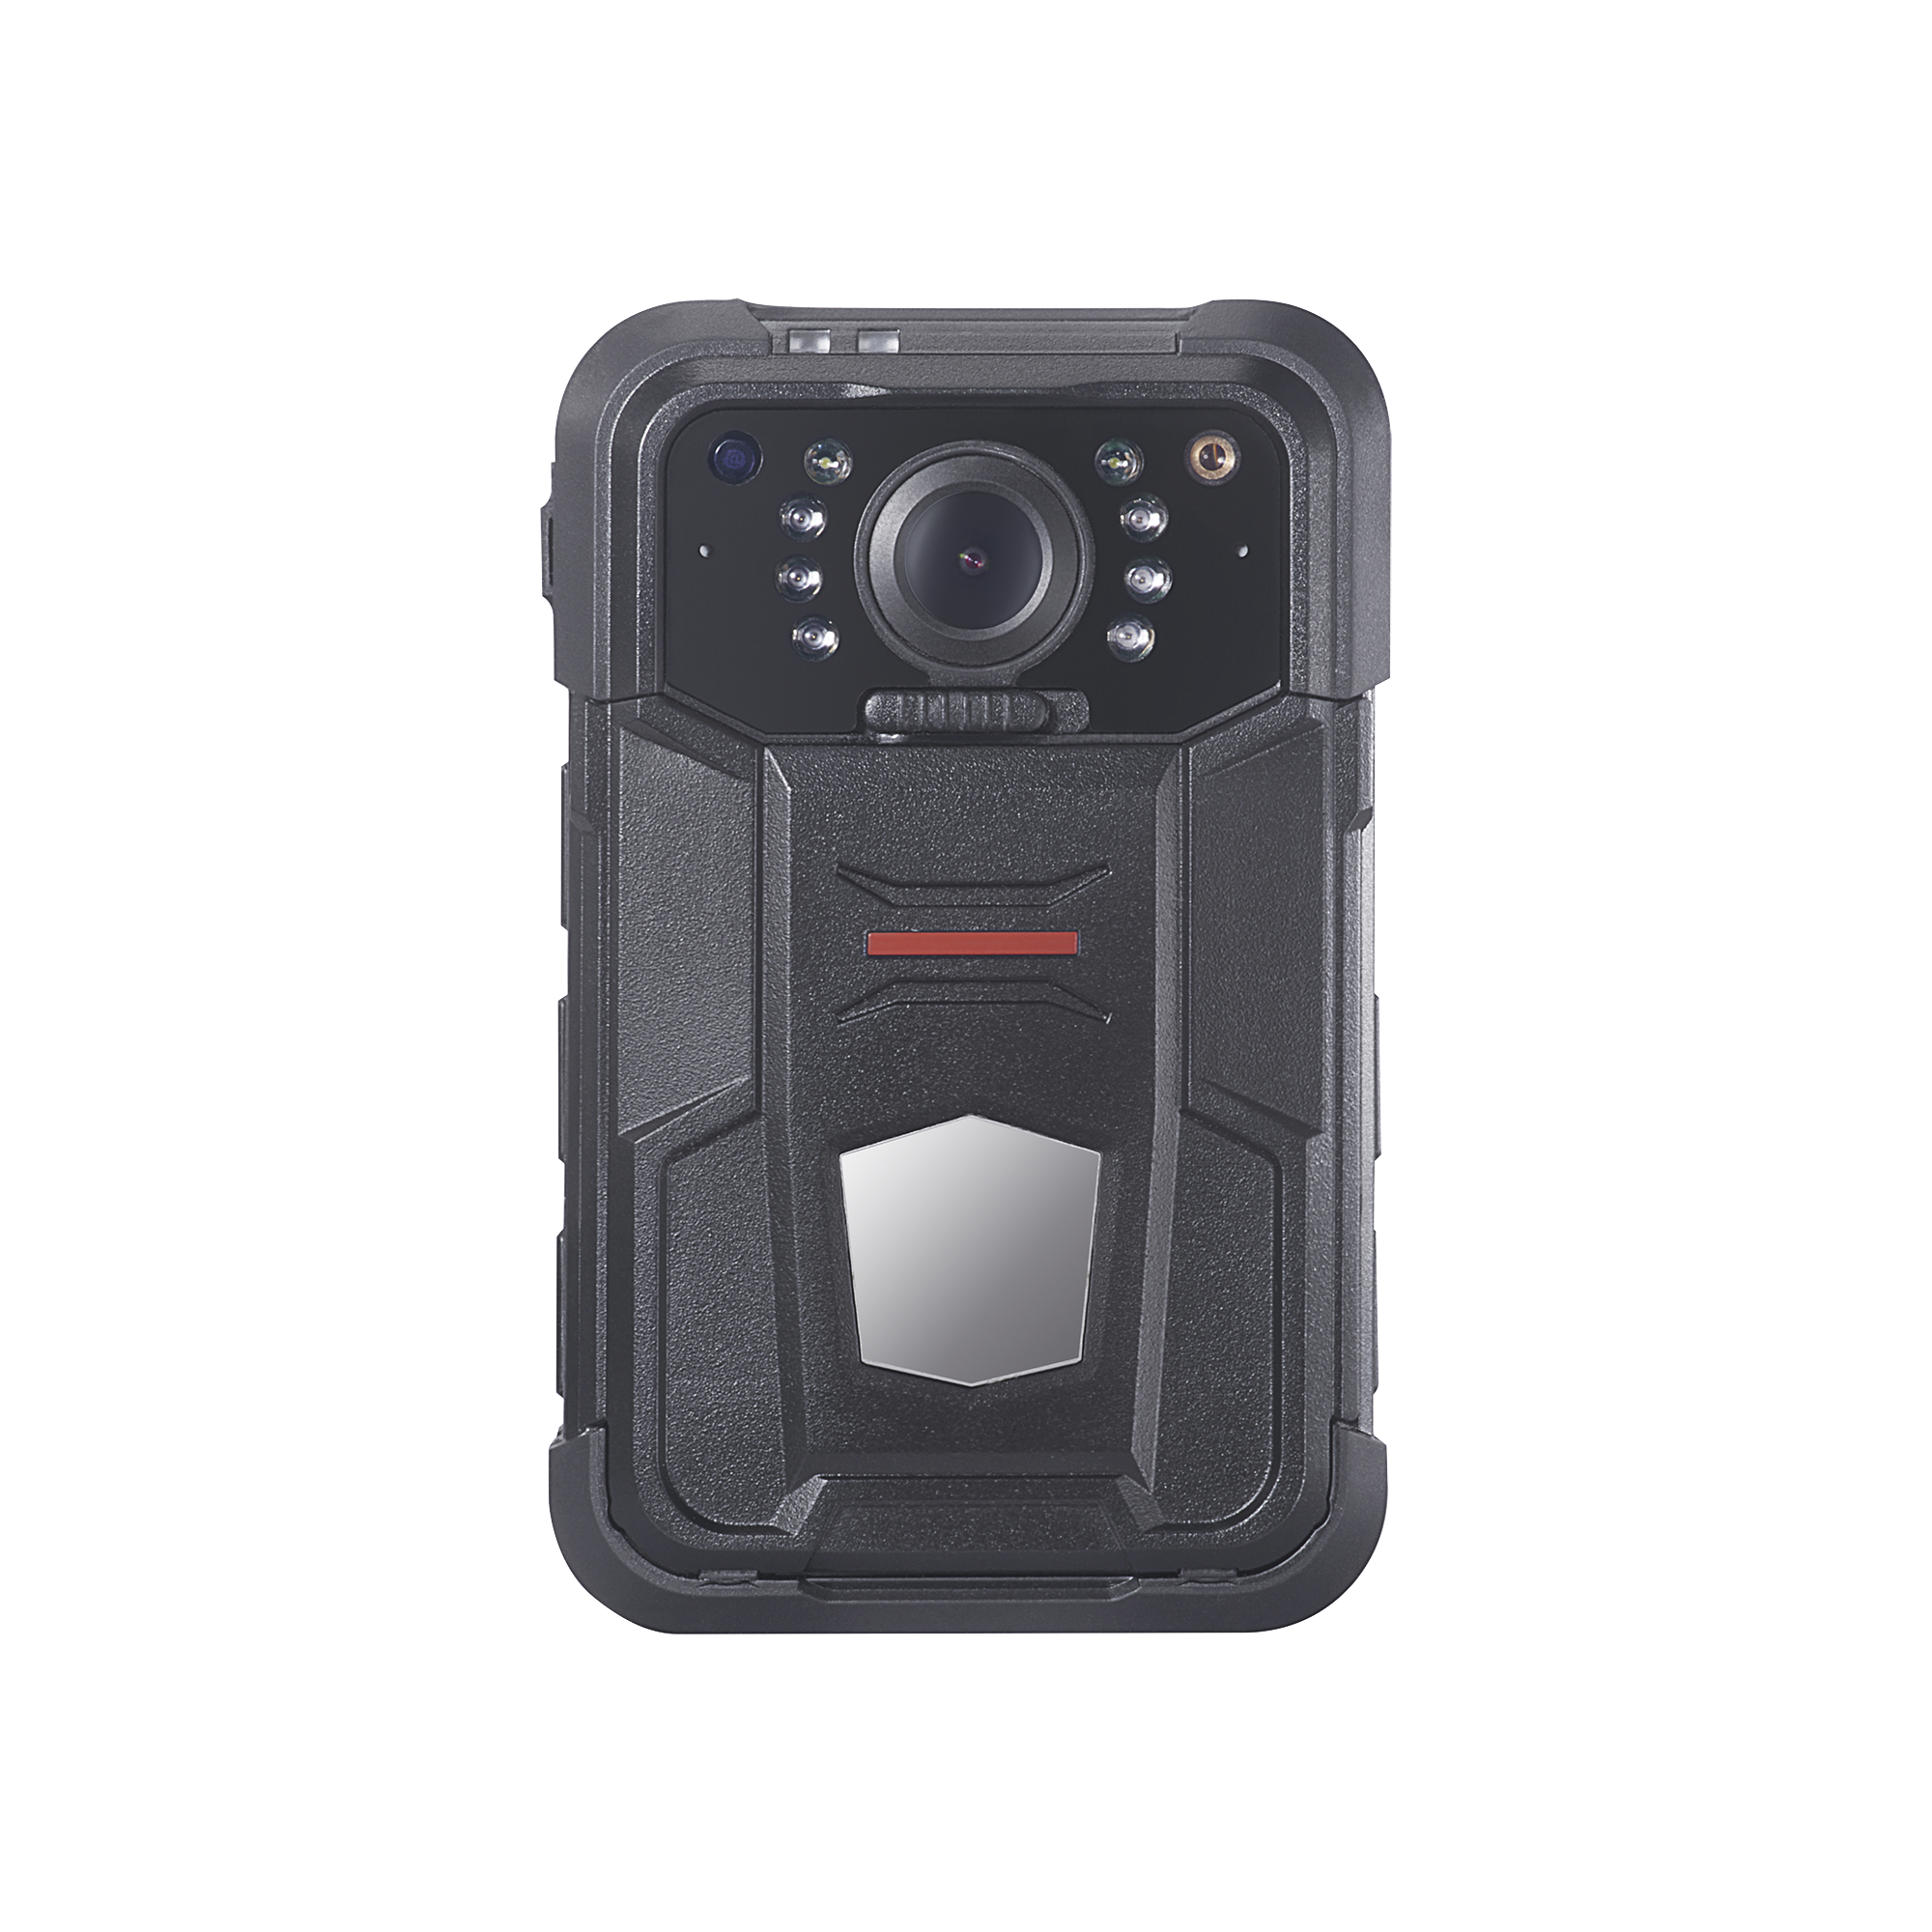 Body Camera Portátil / Grabación a 1080p / IP67 / H.265 / 32 GB / GPS / WIFI / Fotos de 30 Megapixel